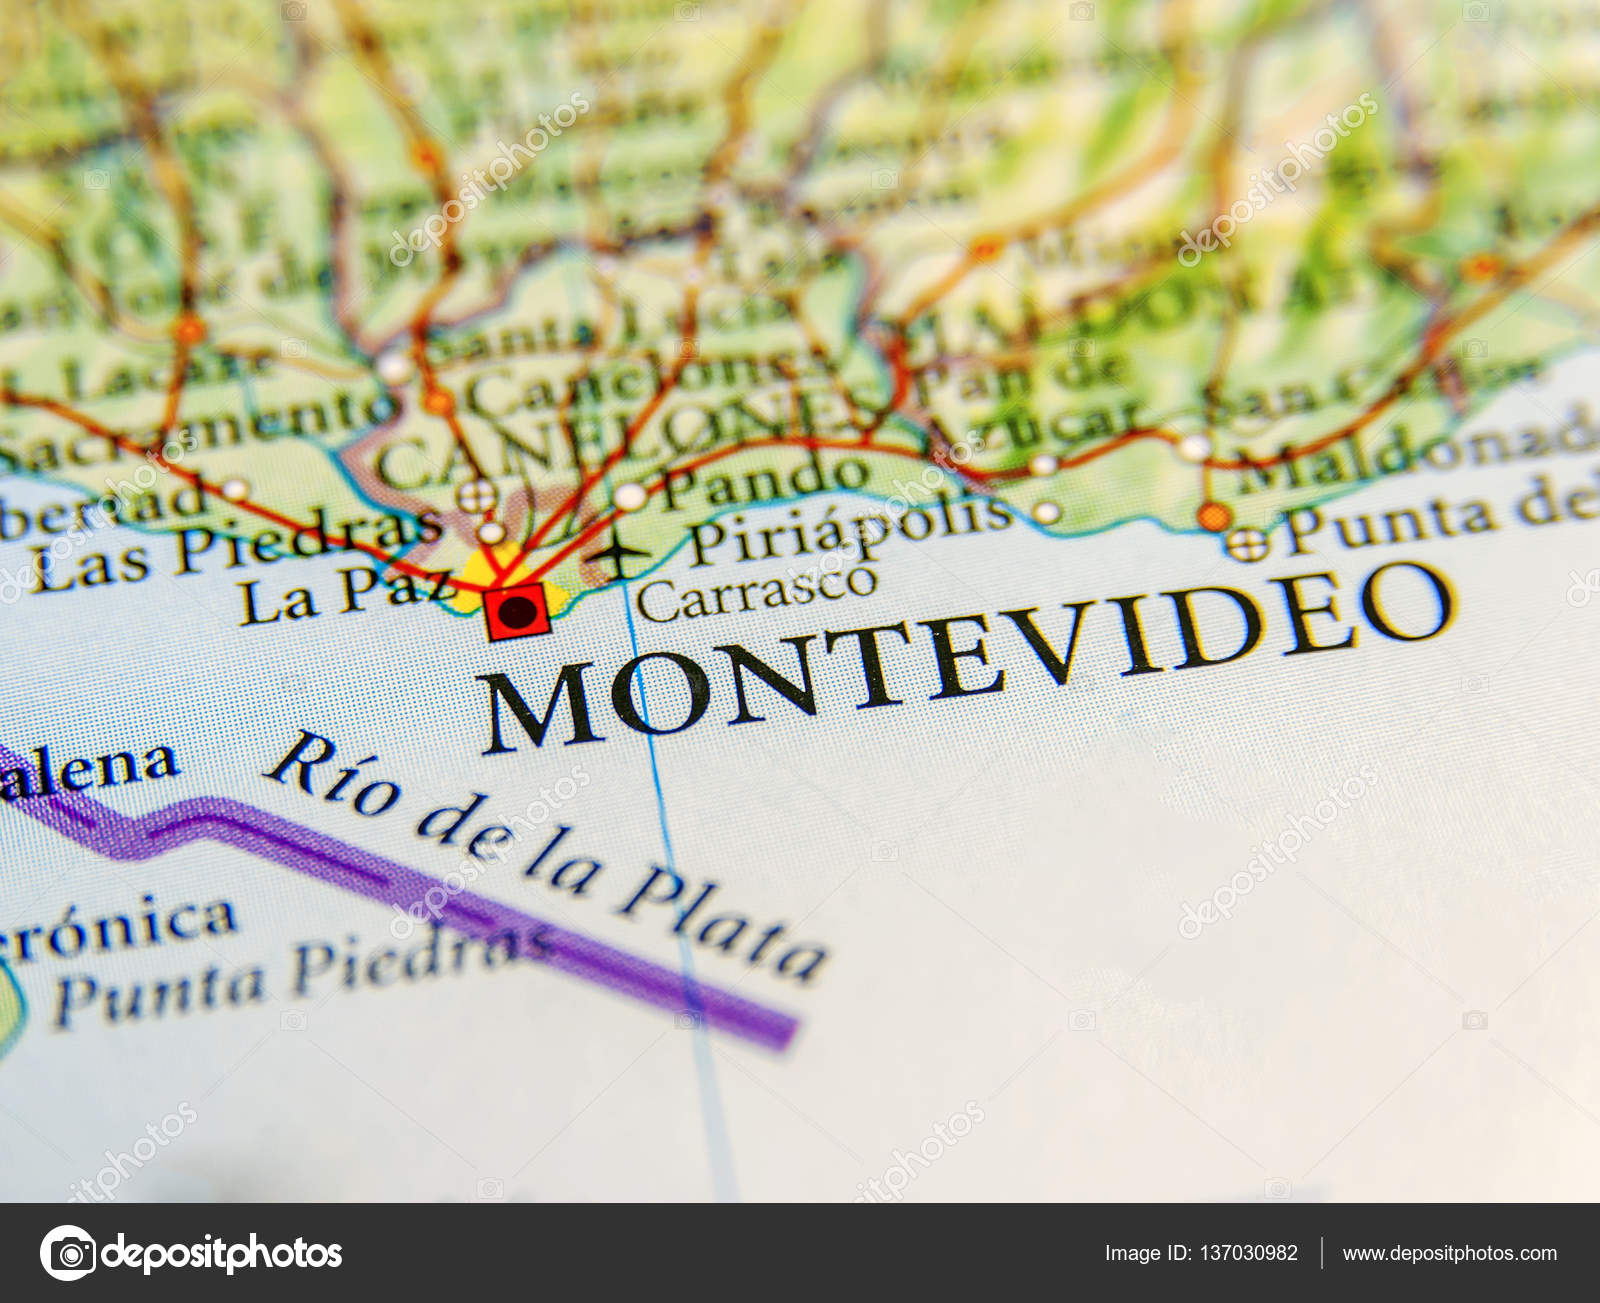 Image of: Geographic Map Of Uruguay With Capital Montevideo City Stock Photo C Bennian 137030982